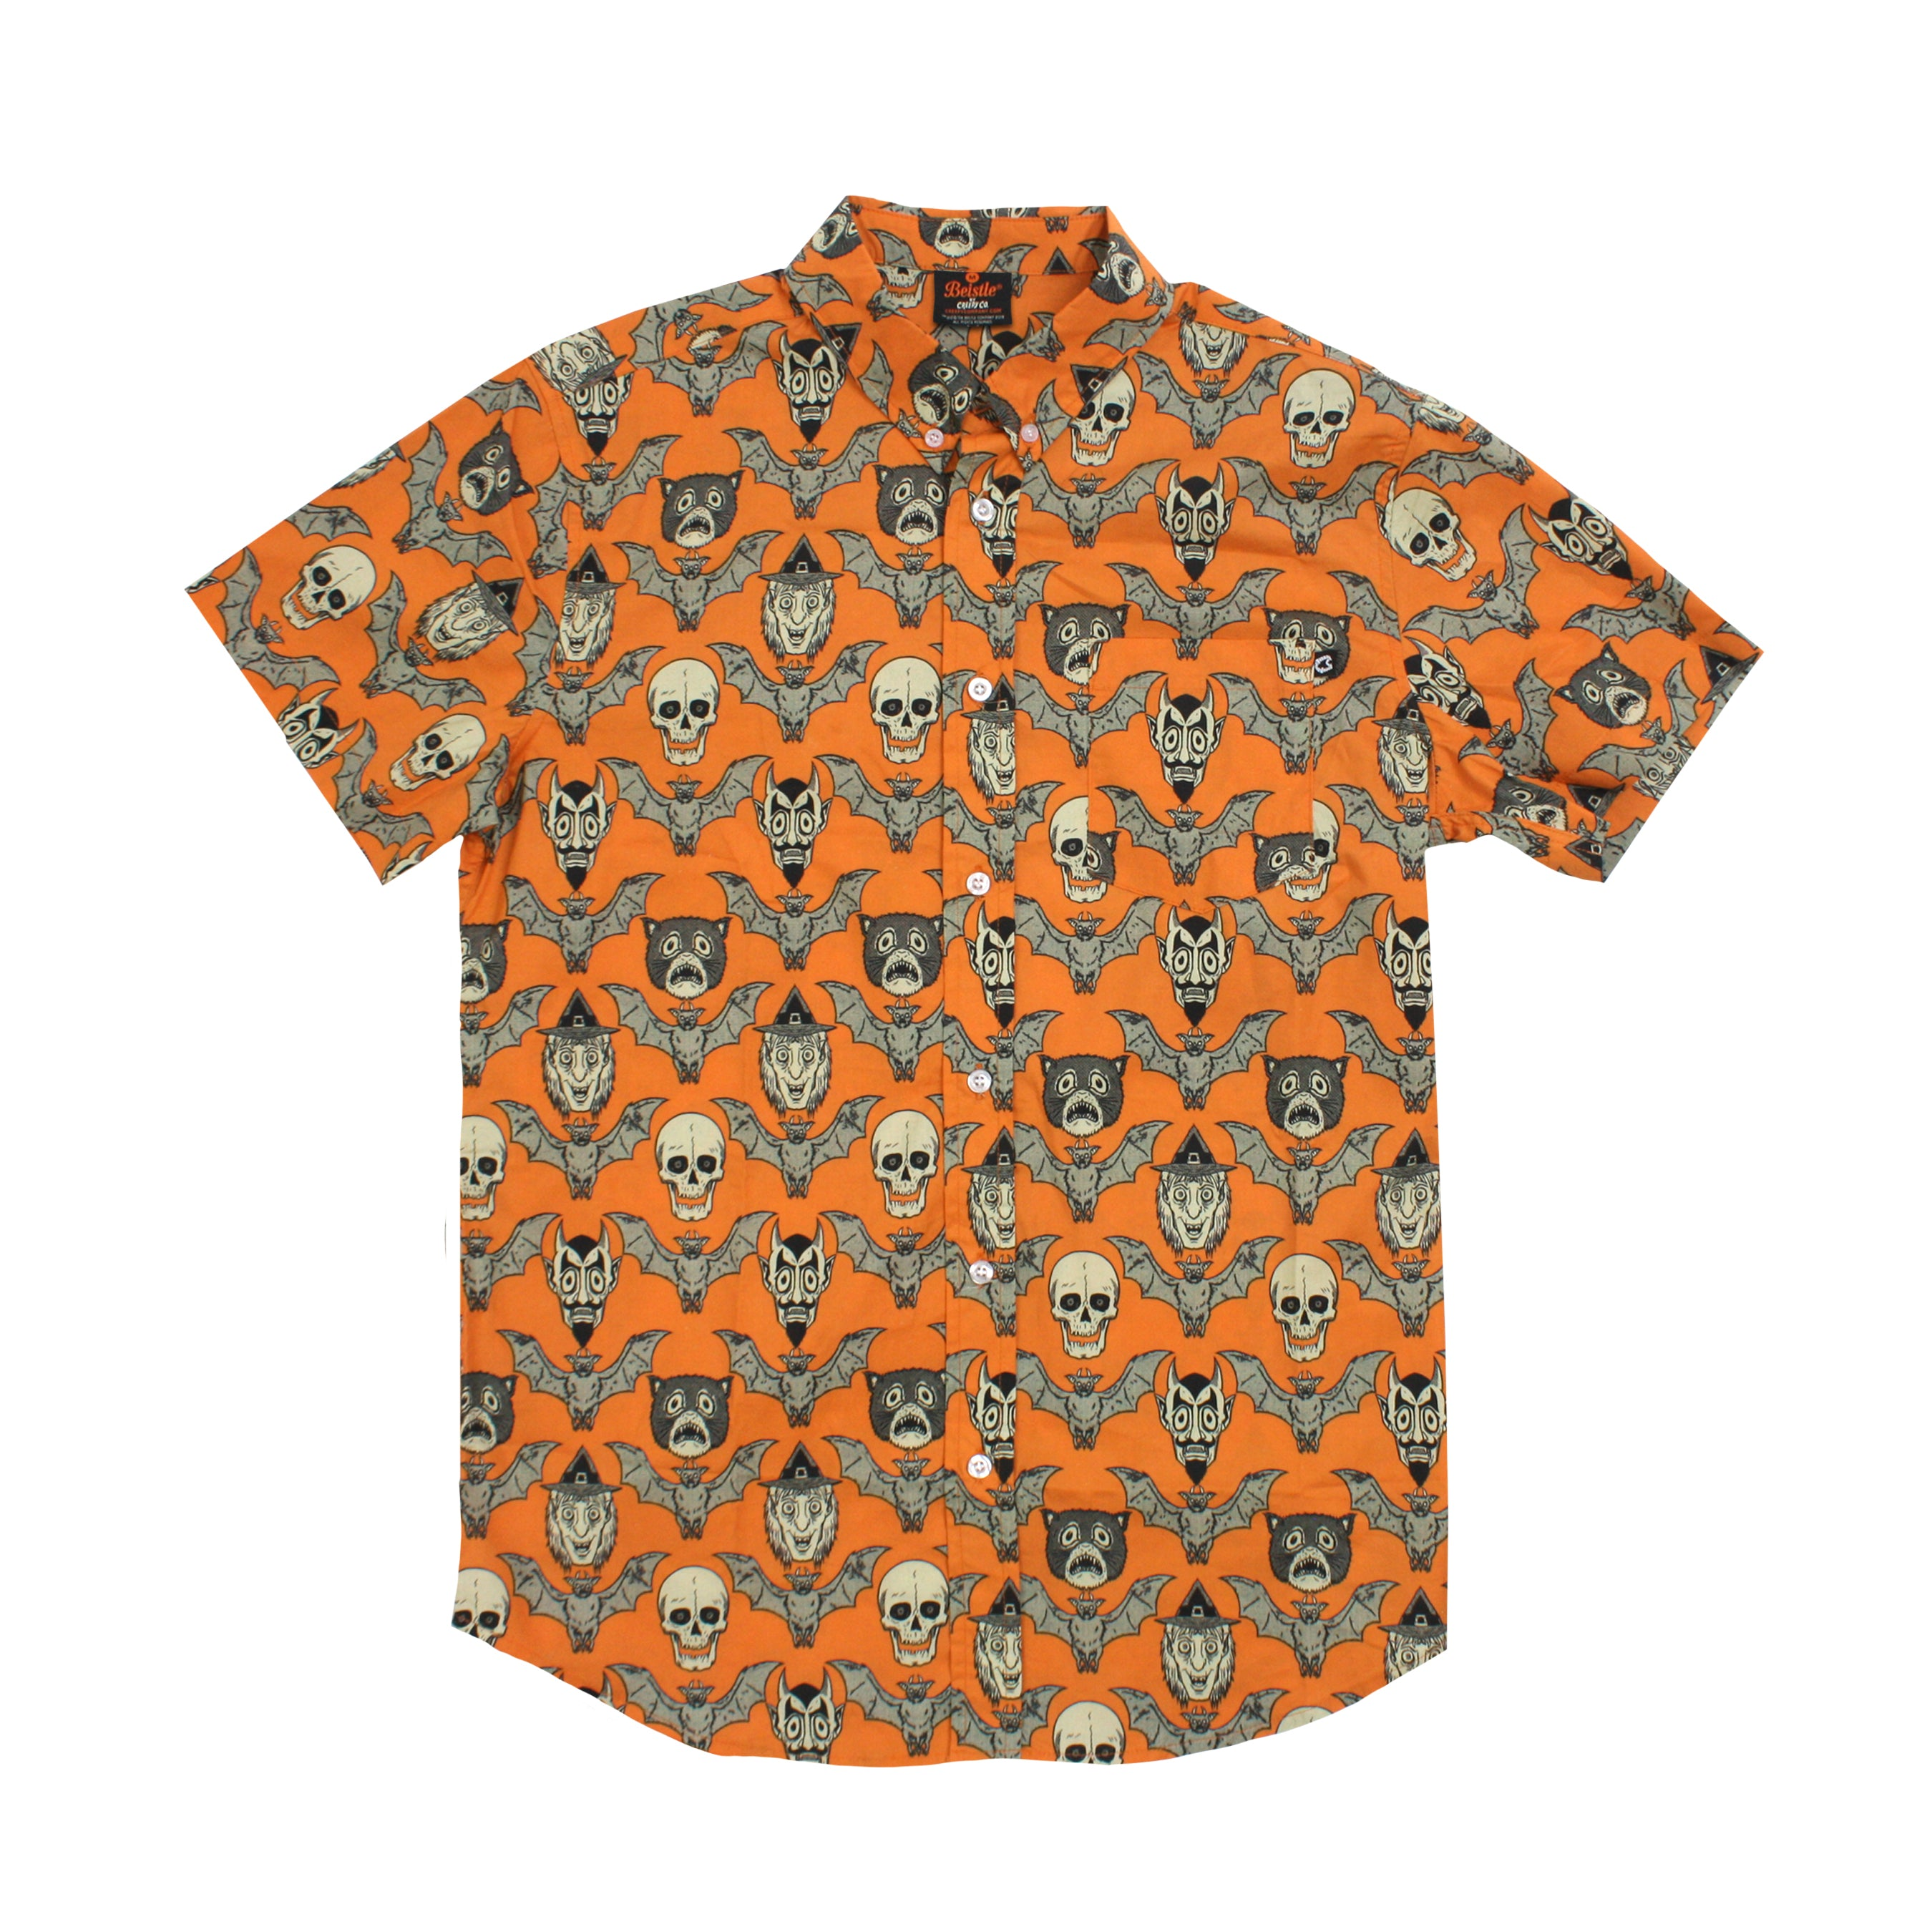 Beistle Vintage Fright Button-up Shirt